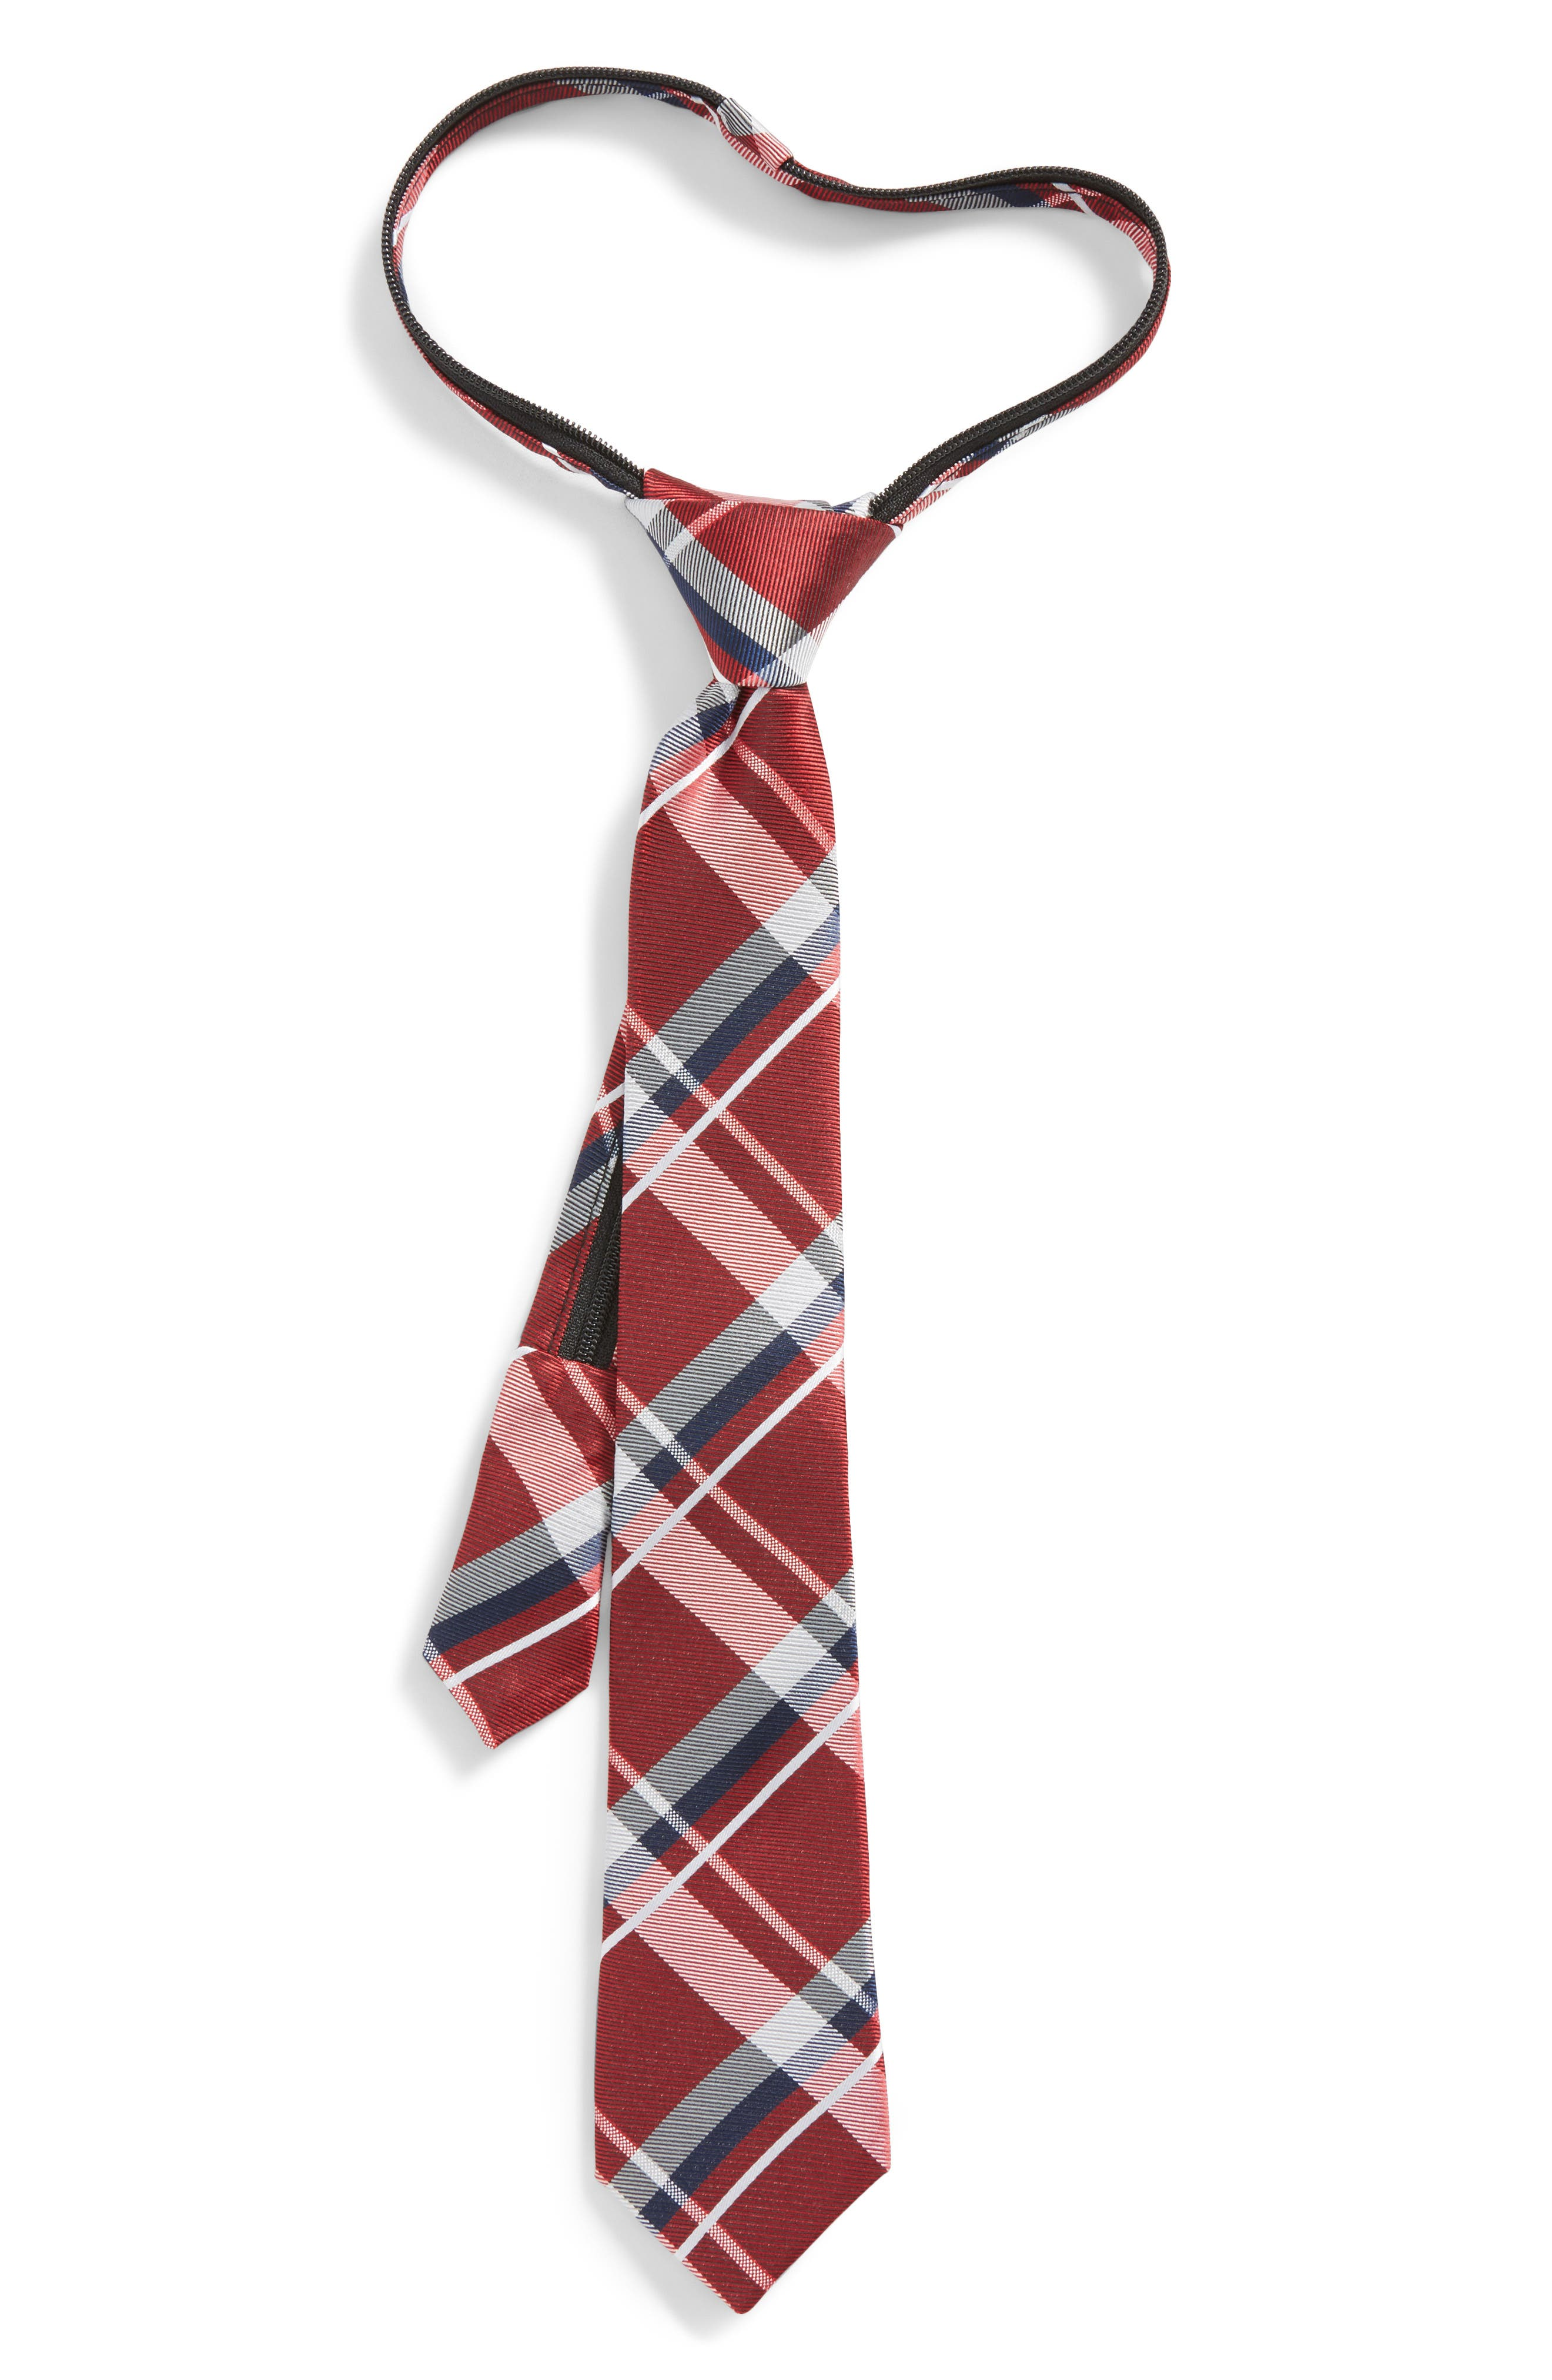 Plaid Silk Zip Tie,                             Main thumbnail 1, color,                             Red- Navy